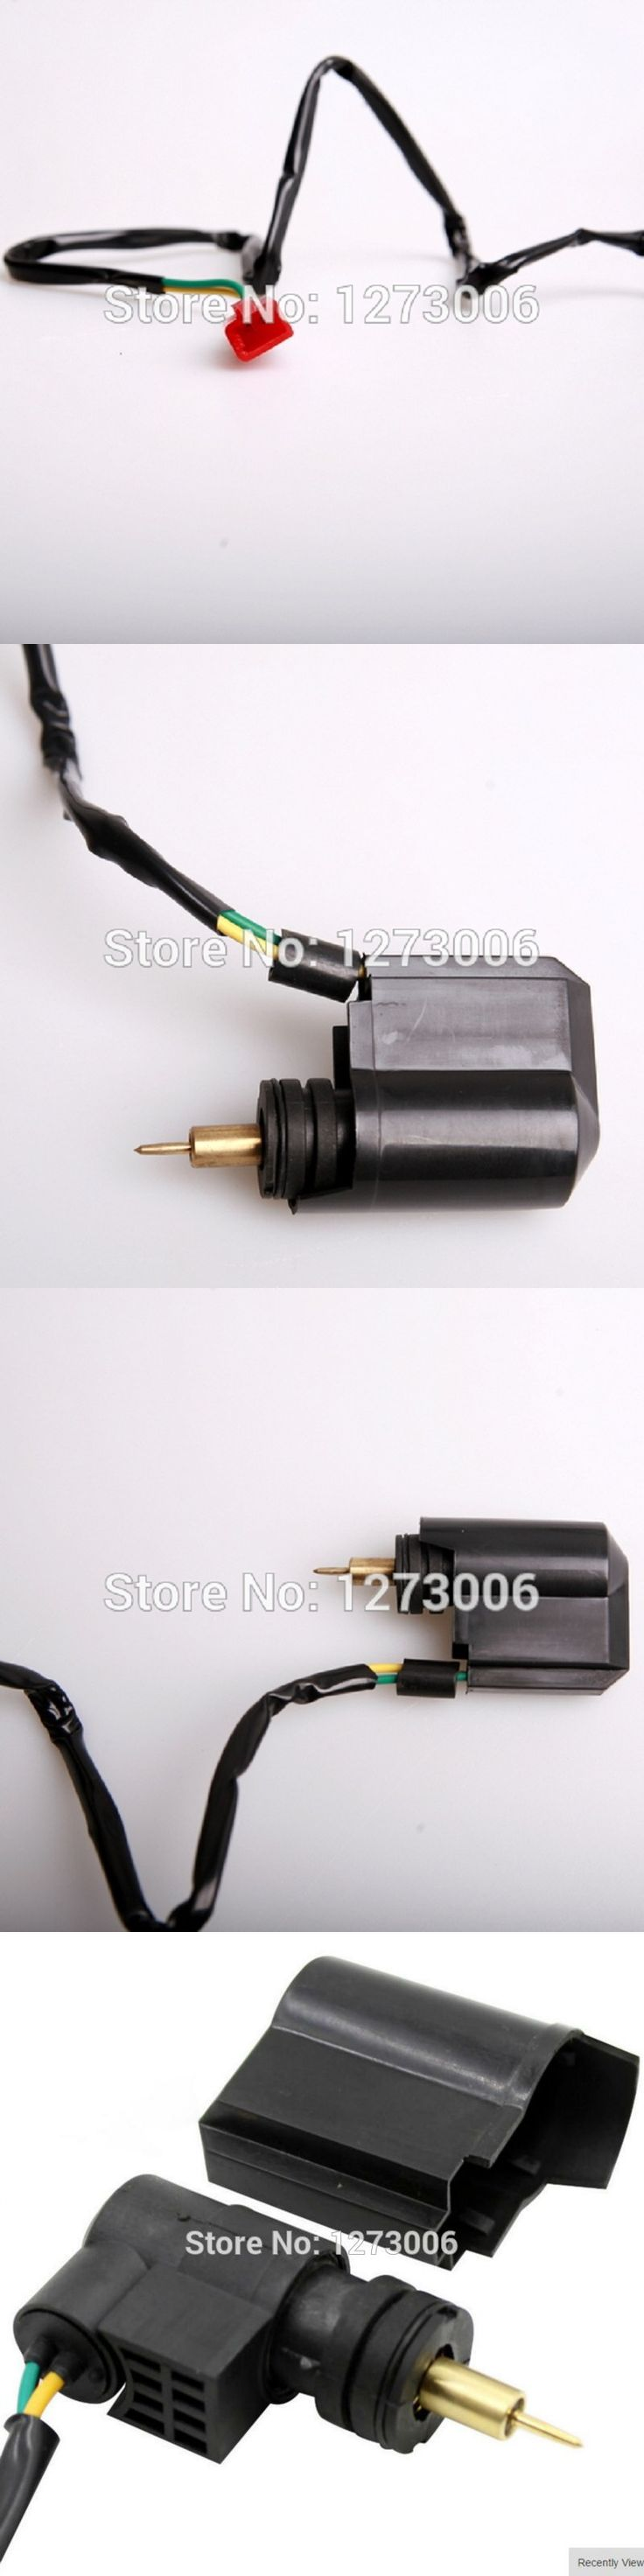 1PCS Car-Stying Moped ATVs GY6 50cc 125cc 150cc CARB Carburetor Electric Choke Automatic Electric Choke Scooter Black HOT SALE